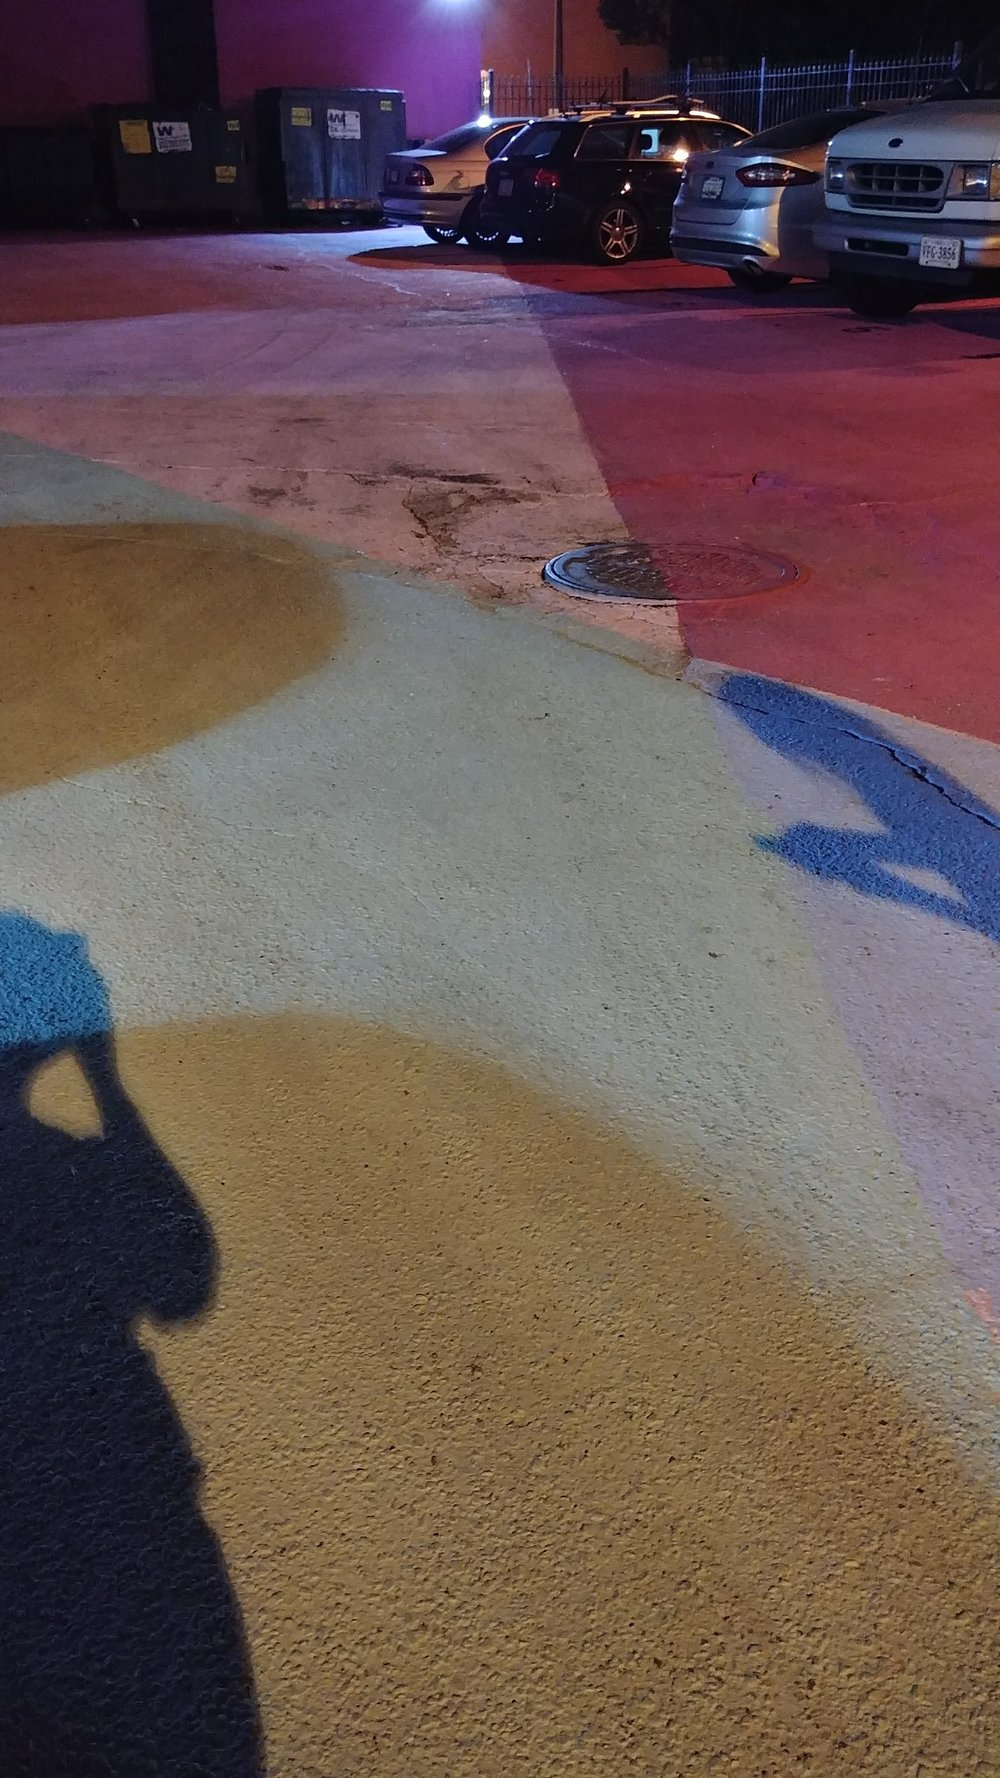 they also painted on the ground and it was very pretty in the shadows